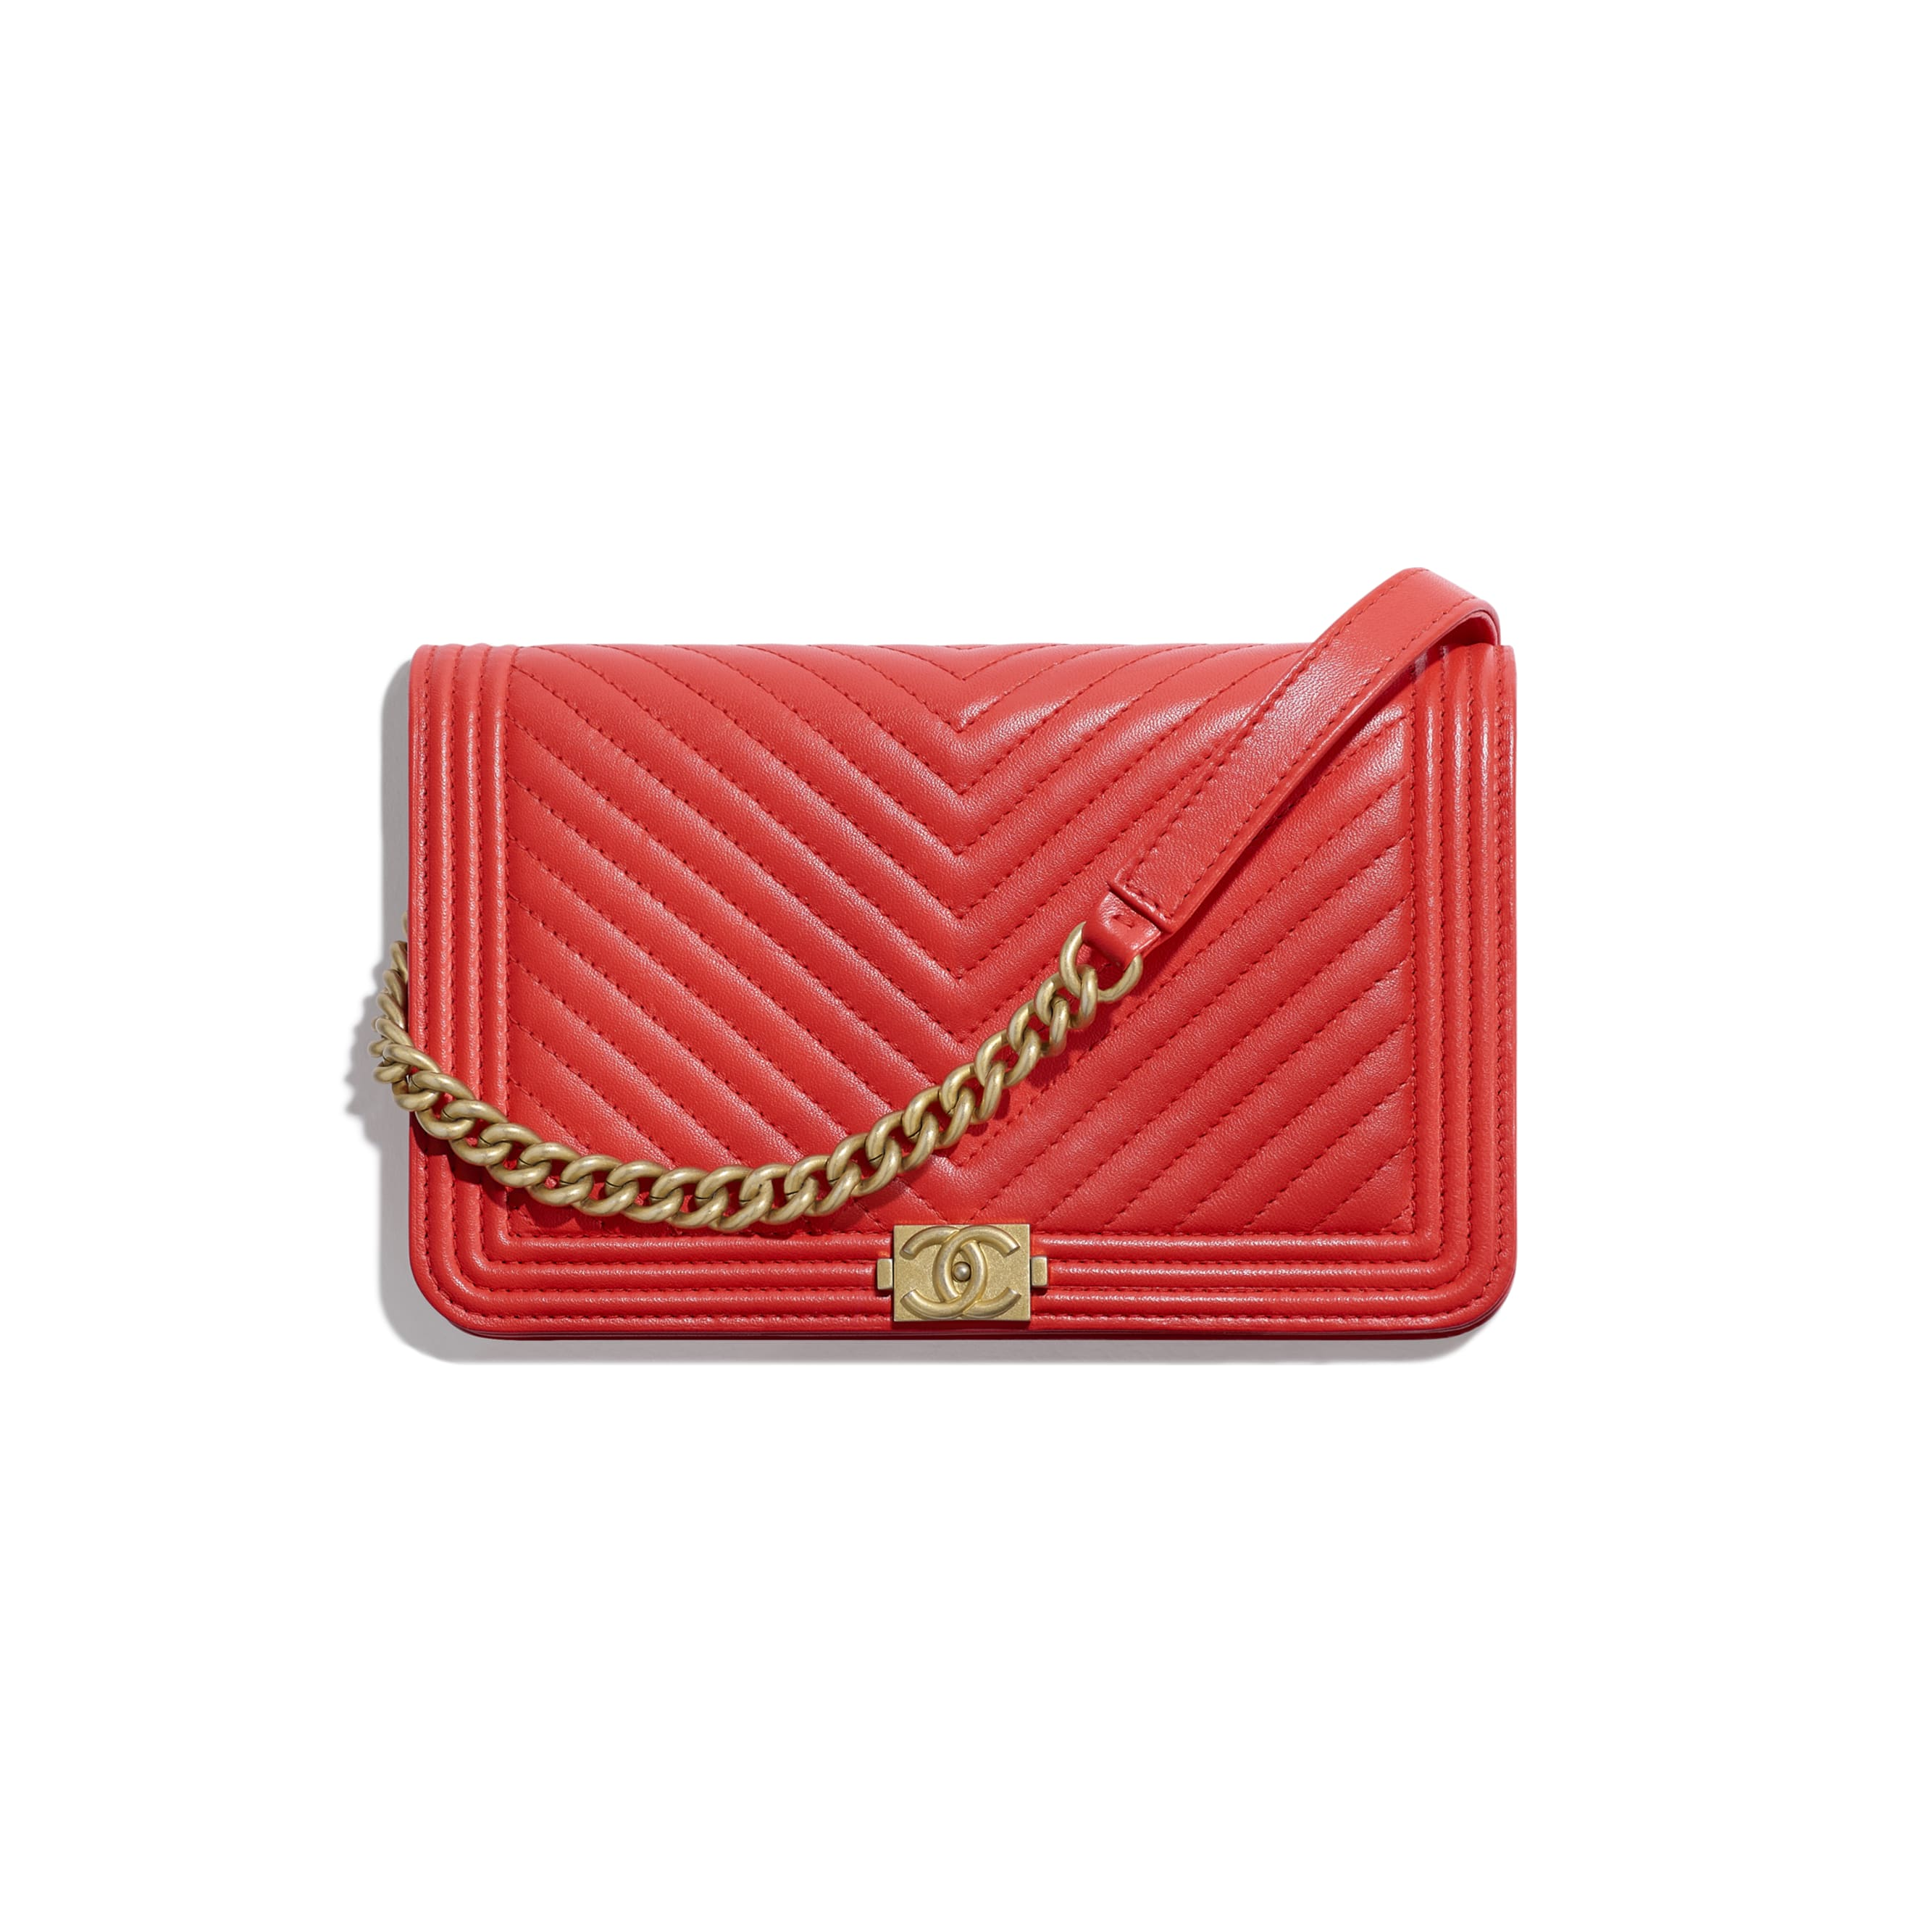 BOY CHANEL Wallet On Chain - Red - Lambskin - CHANEL - Default view - see standard sized version